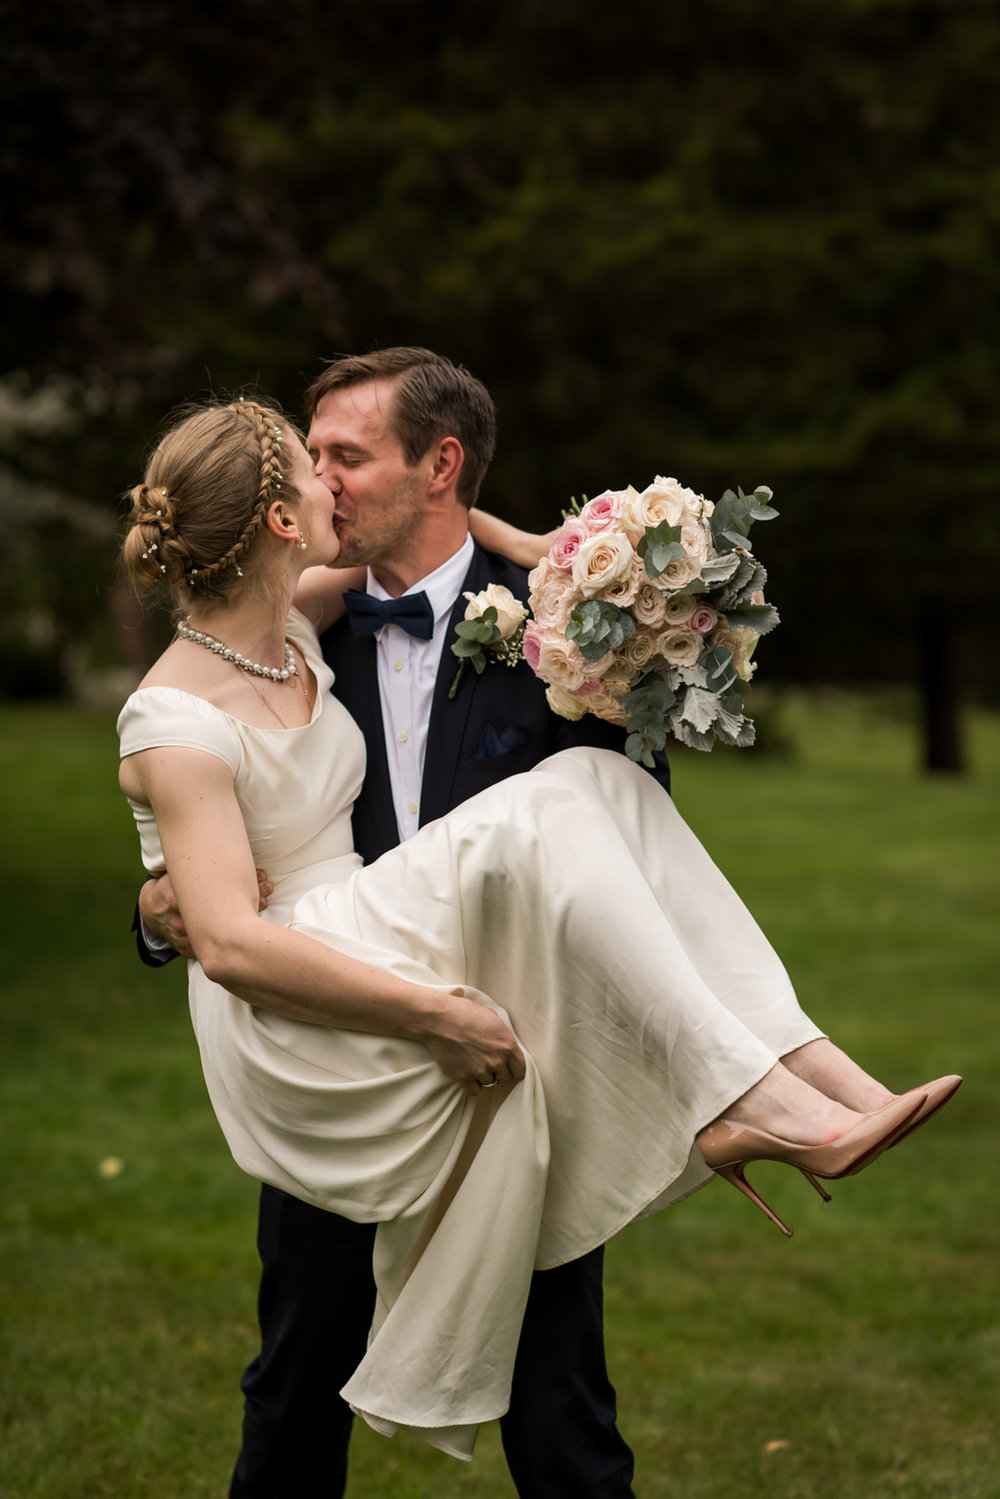 Stefy Hilmer Photography-bride and groom kissingn wedding portrait.jpg